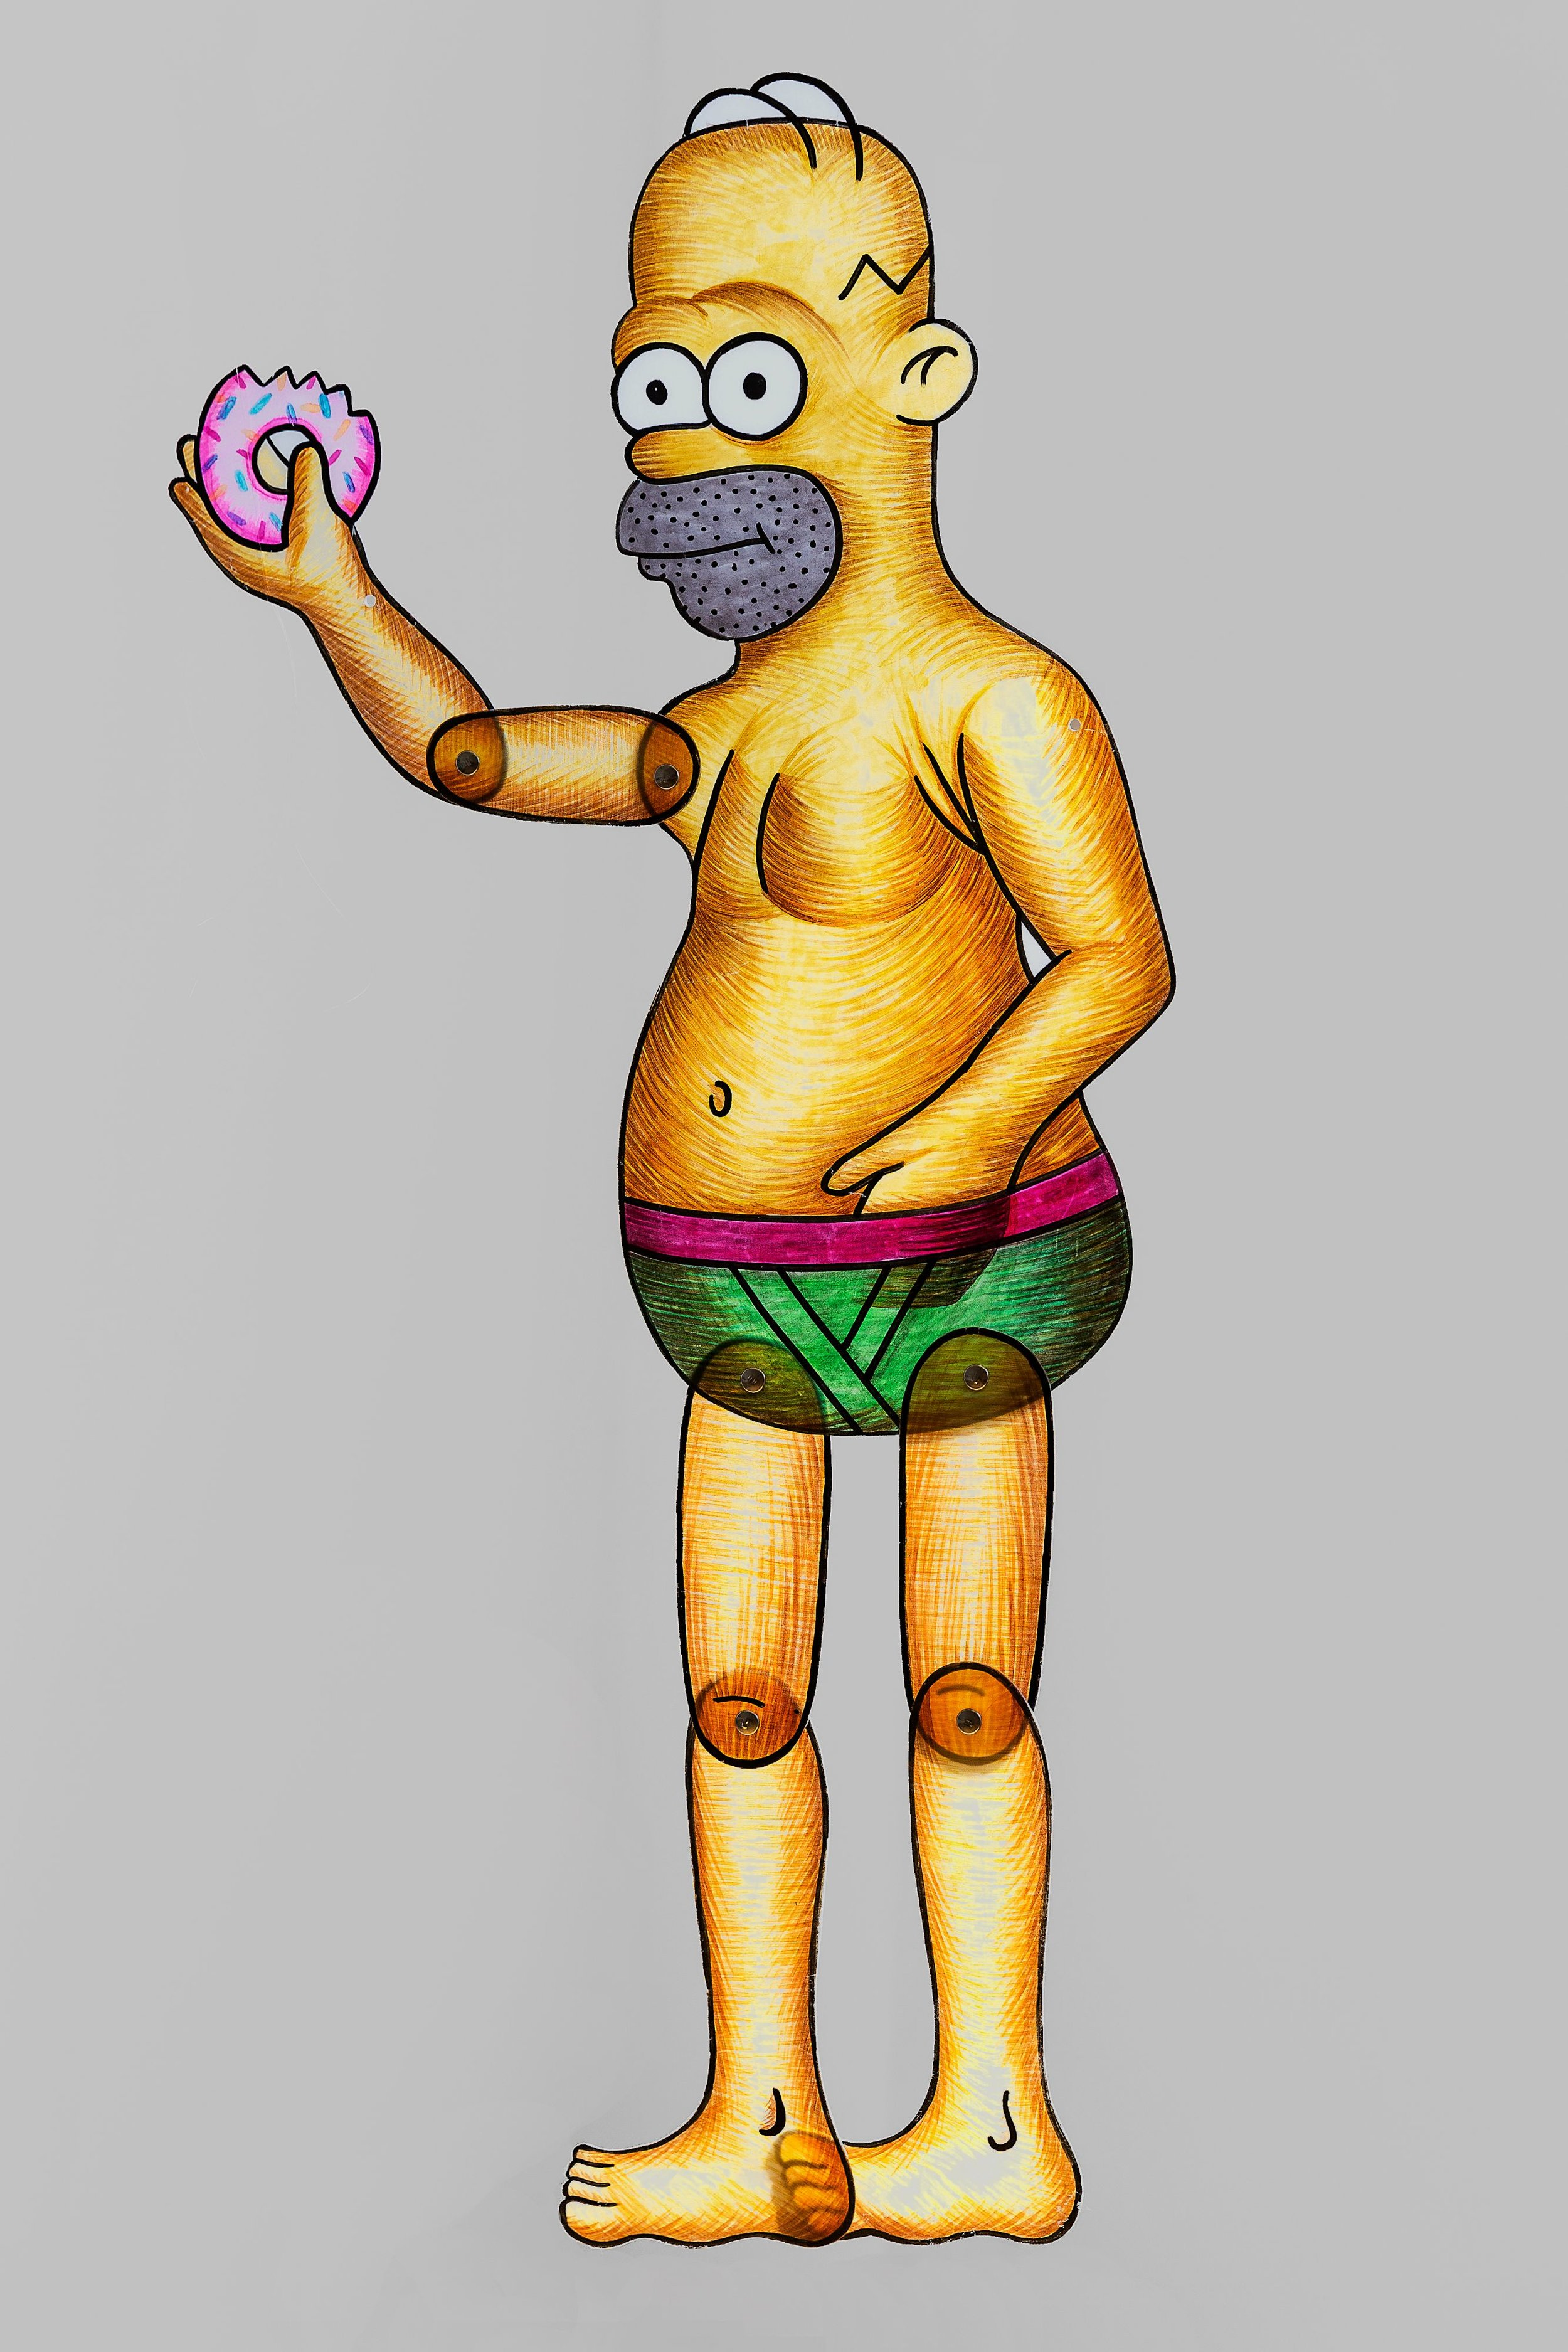 Spyros Aggelopoulos, Homer Simpson, 2018. Alcohol markers on polypropylene puppet, approx. 100cm in height.